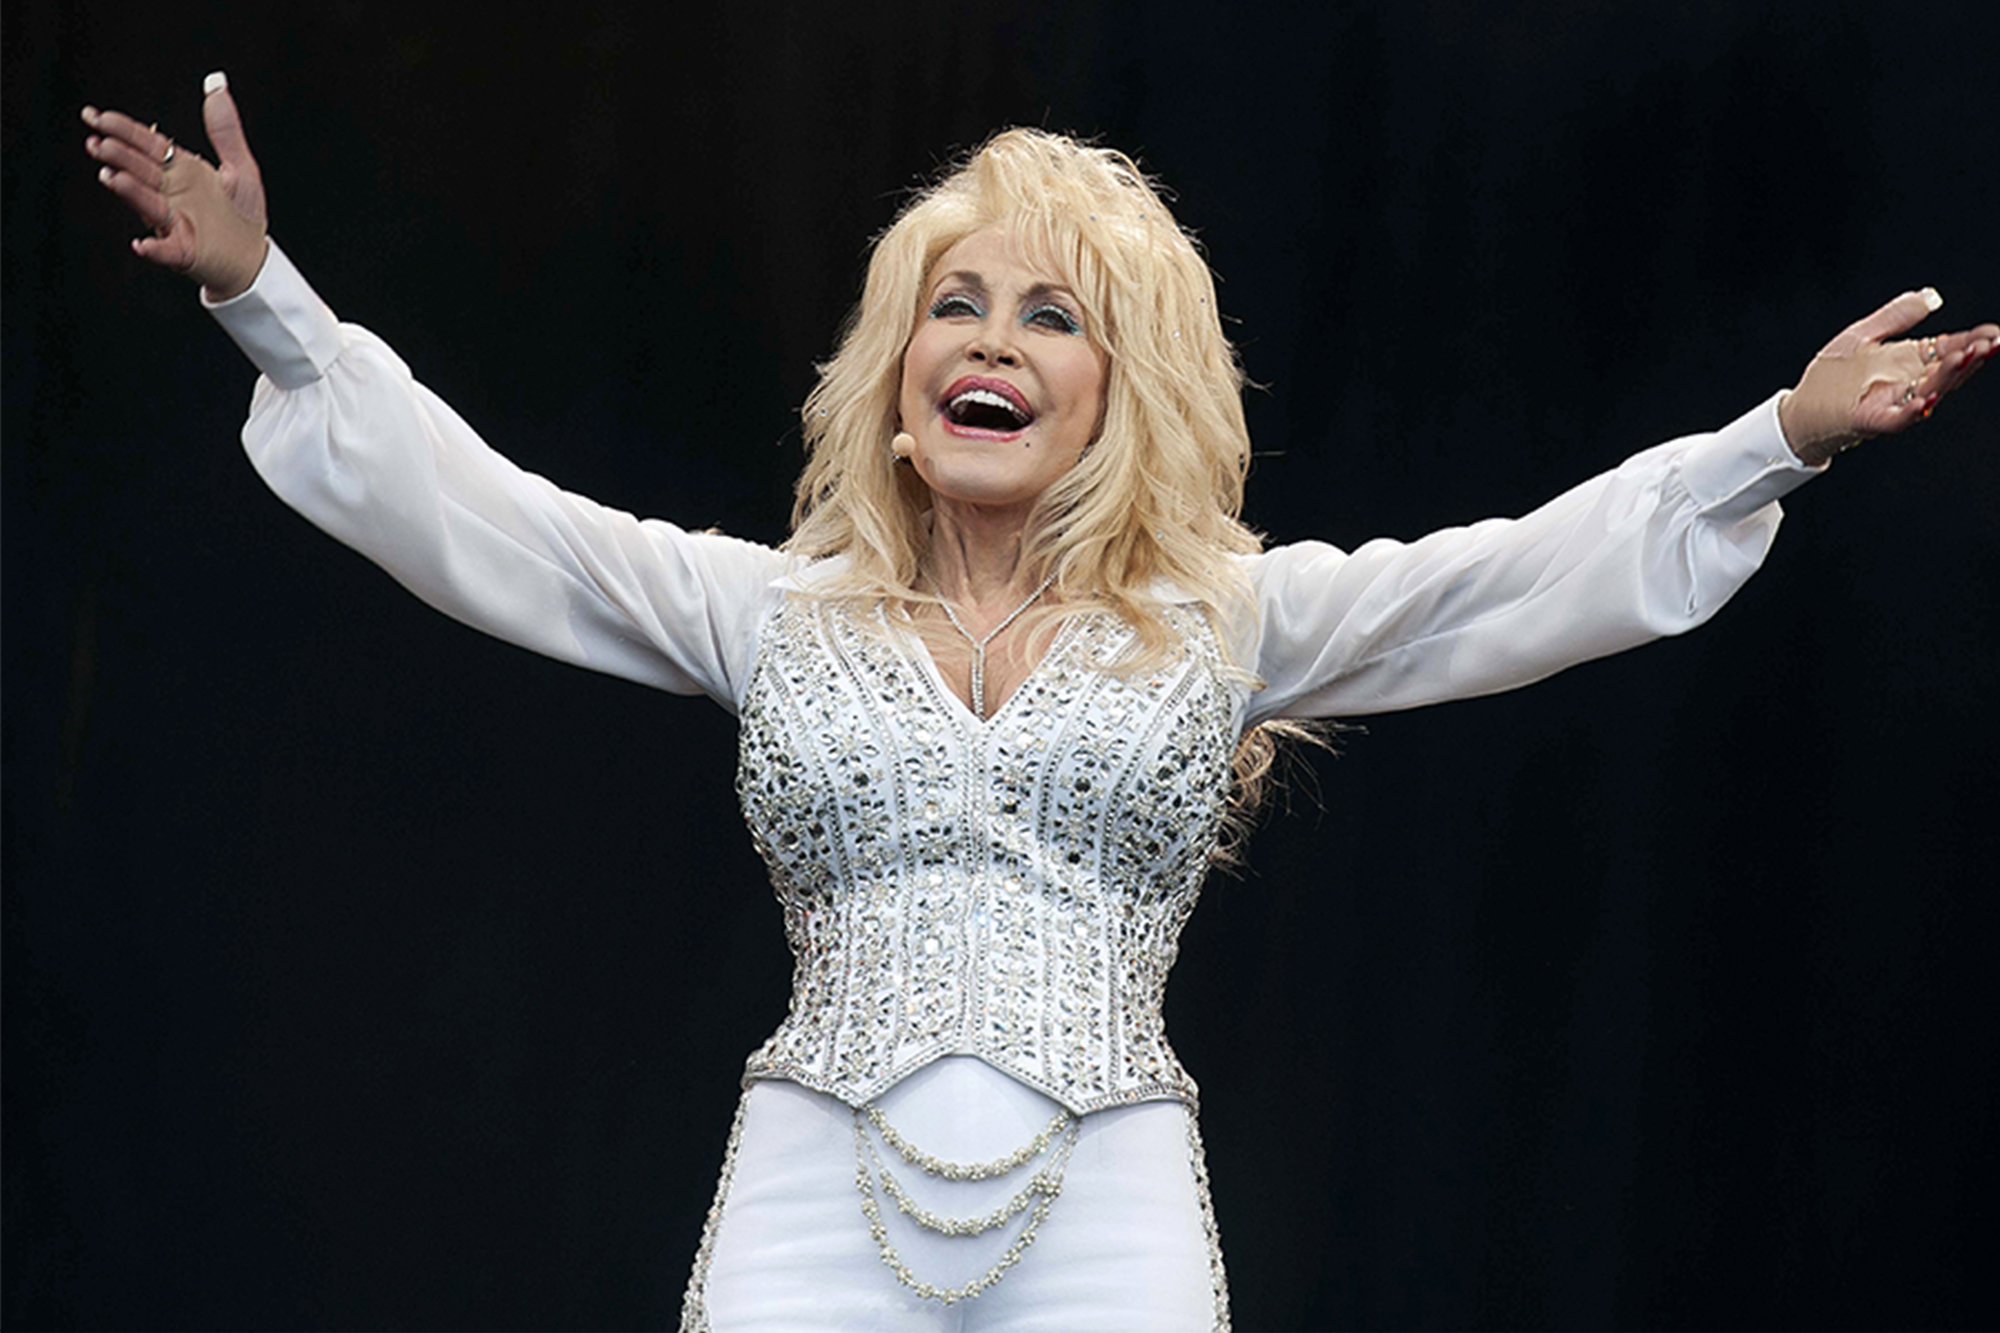 Dolly Parton statue proposed for Tennessee Capitol building